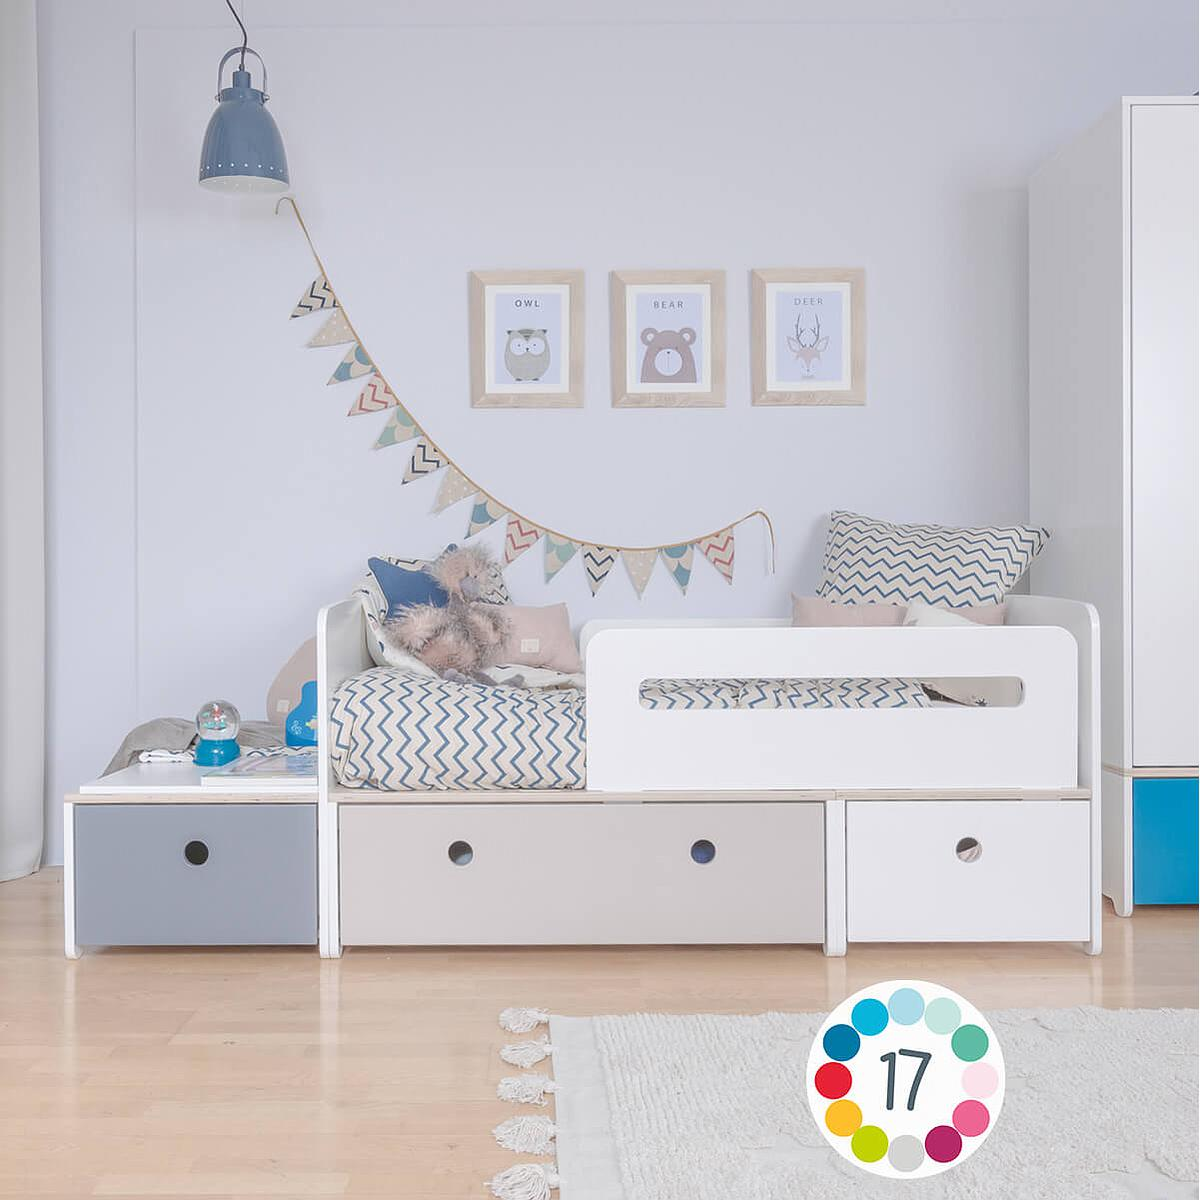 Lit junior évolutif 90x150/200cm COLORFLEX white-pearl grey-white